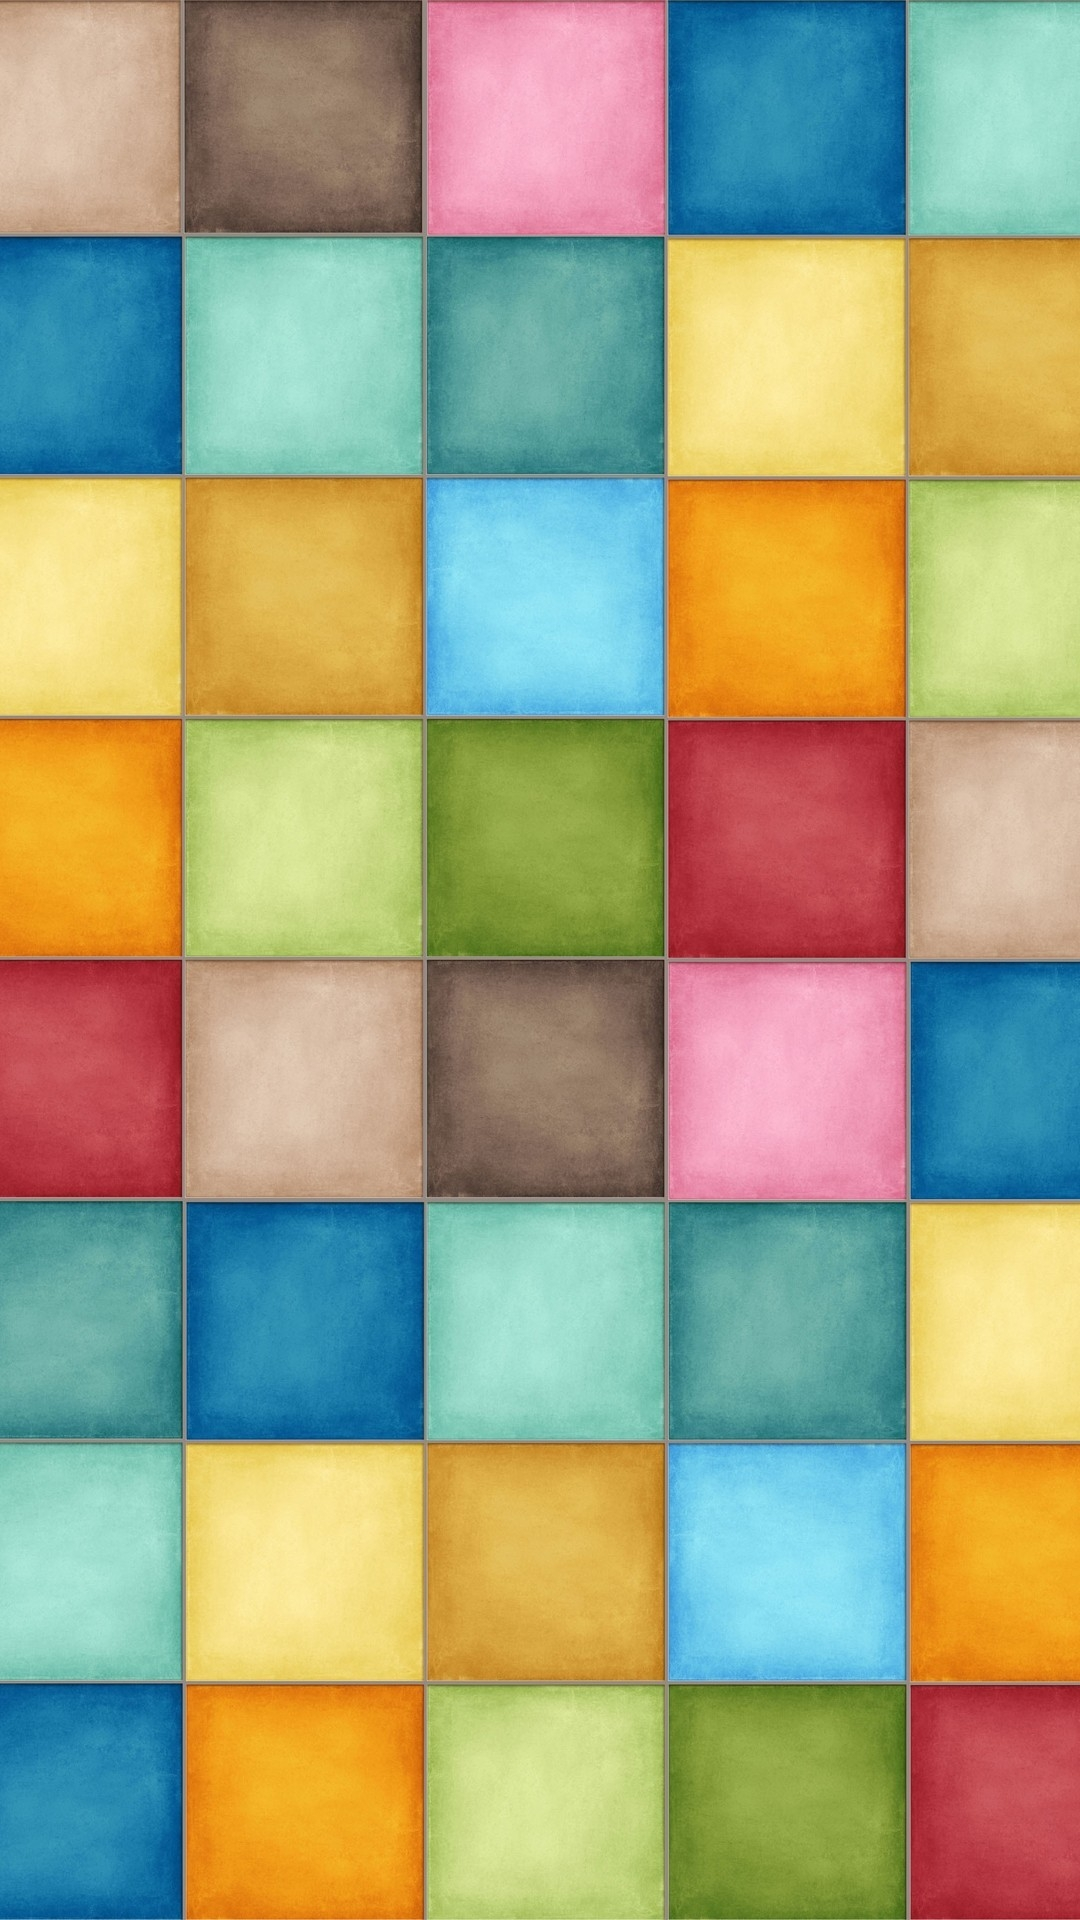 White Backgrounds With Colorful Borders Download Wallpaper Plu...